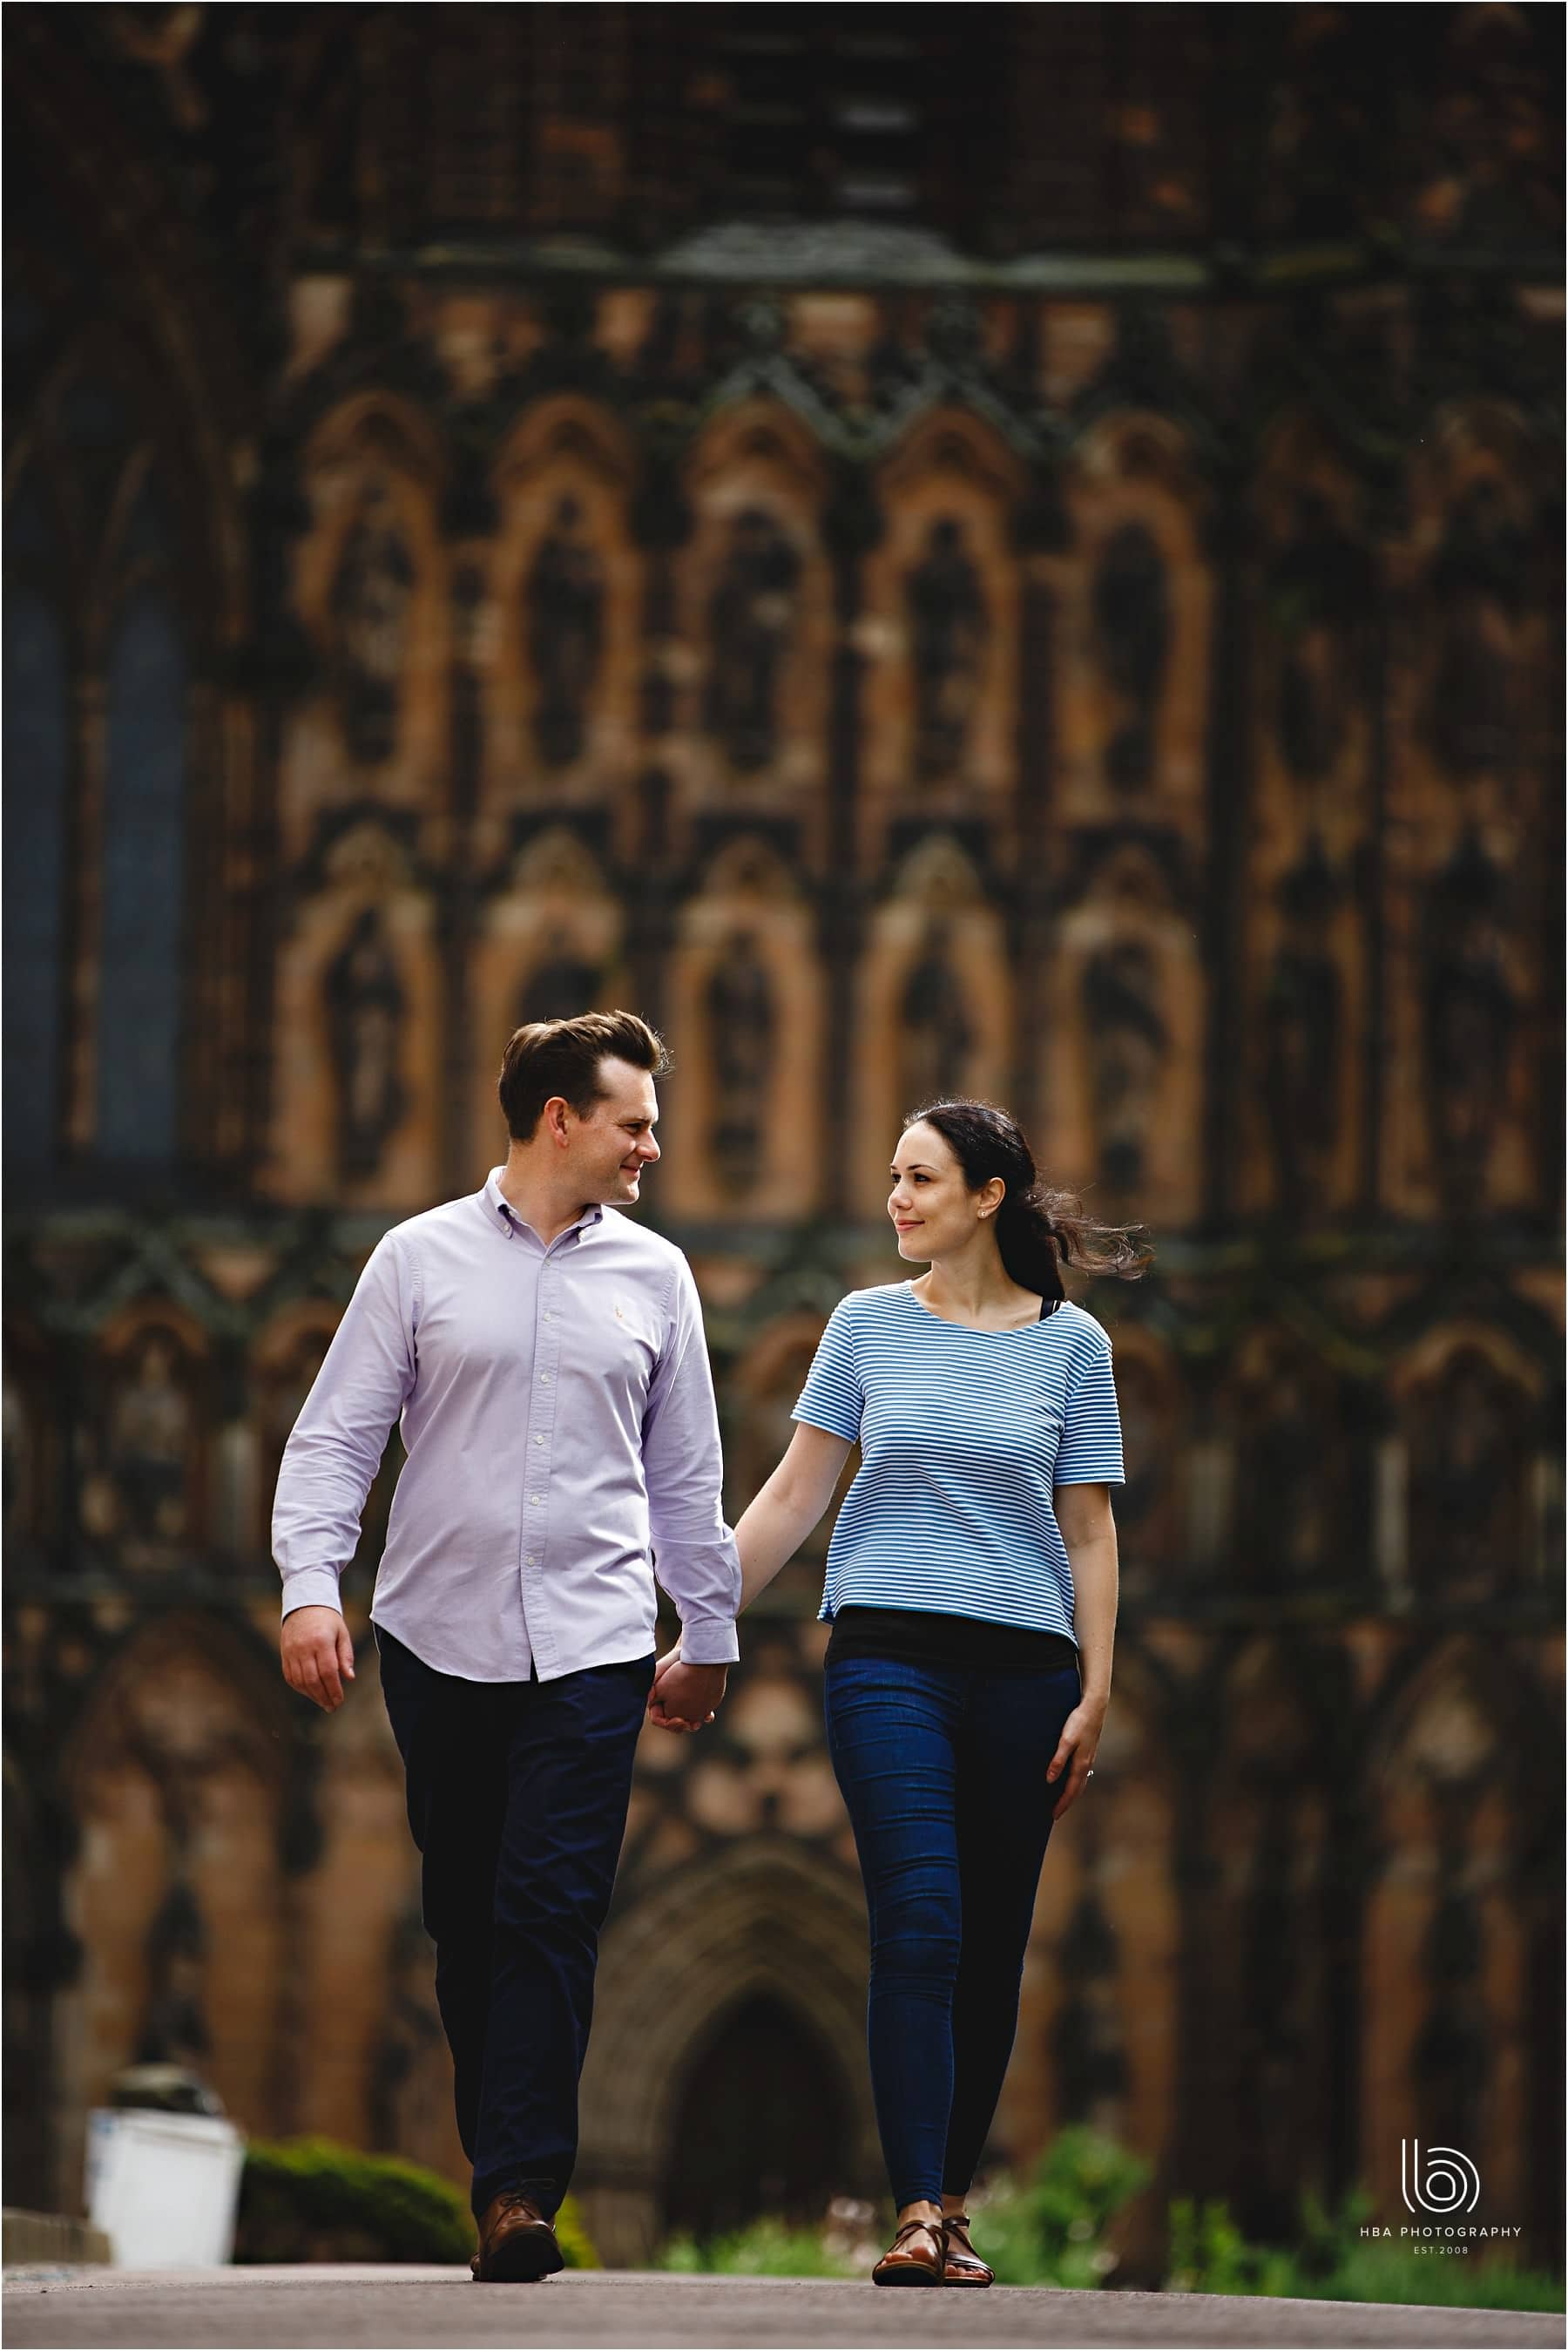 Lichfield_engagement_wedding_photos_0024